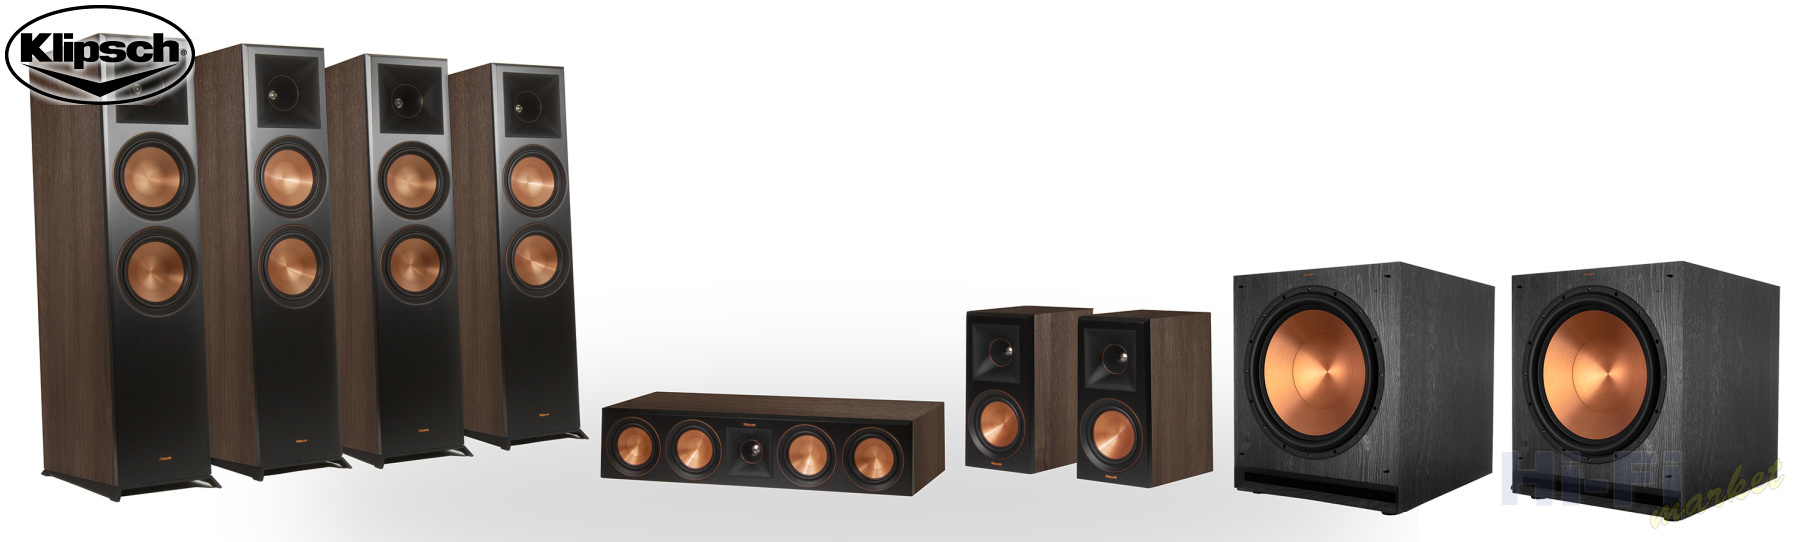 KLIPSCH Reference Premiere RP-8060FA set 7.2.4 Dolby Atmos